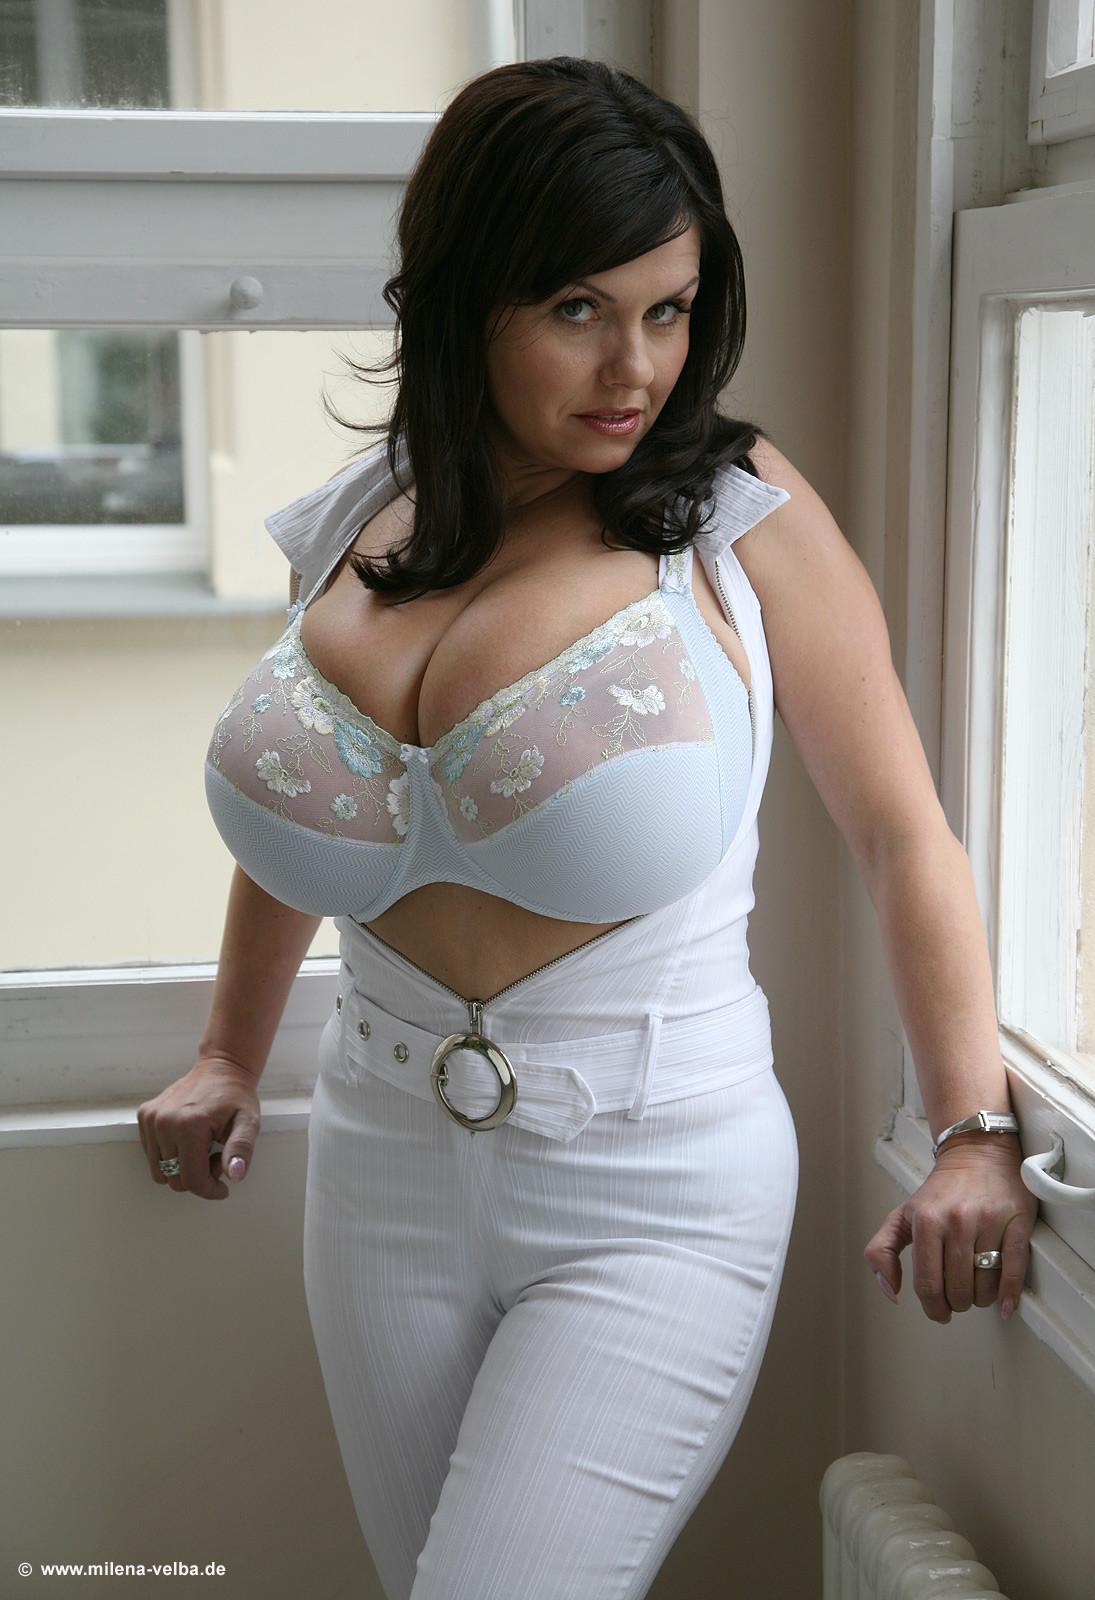 bbw milf xxx hot girls wallpaper